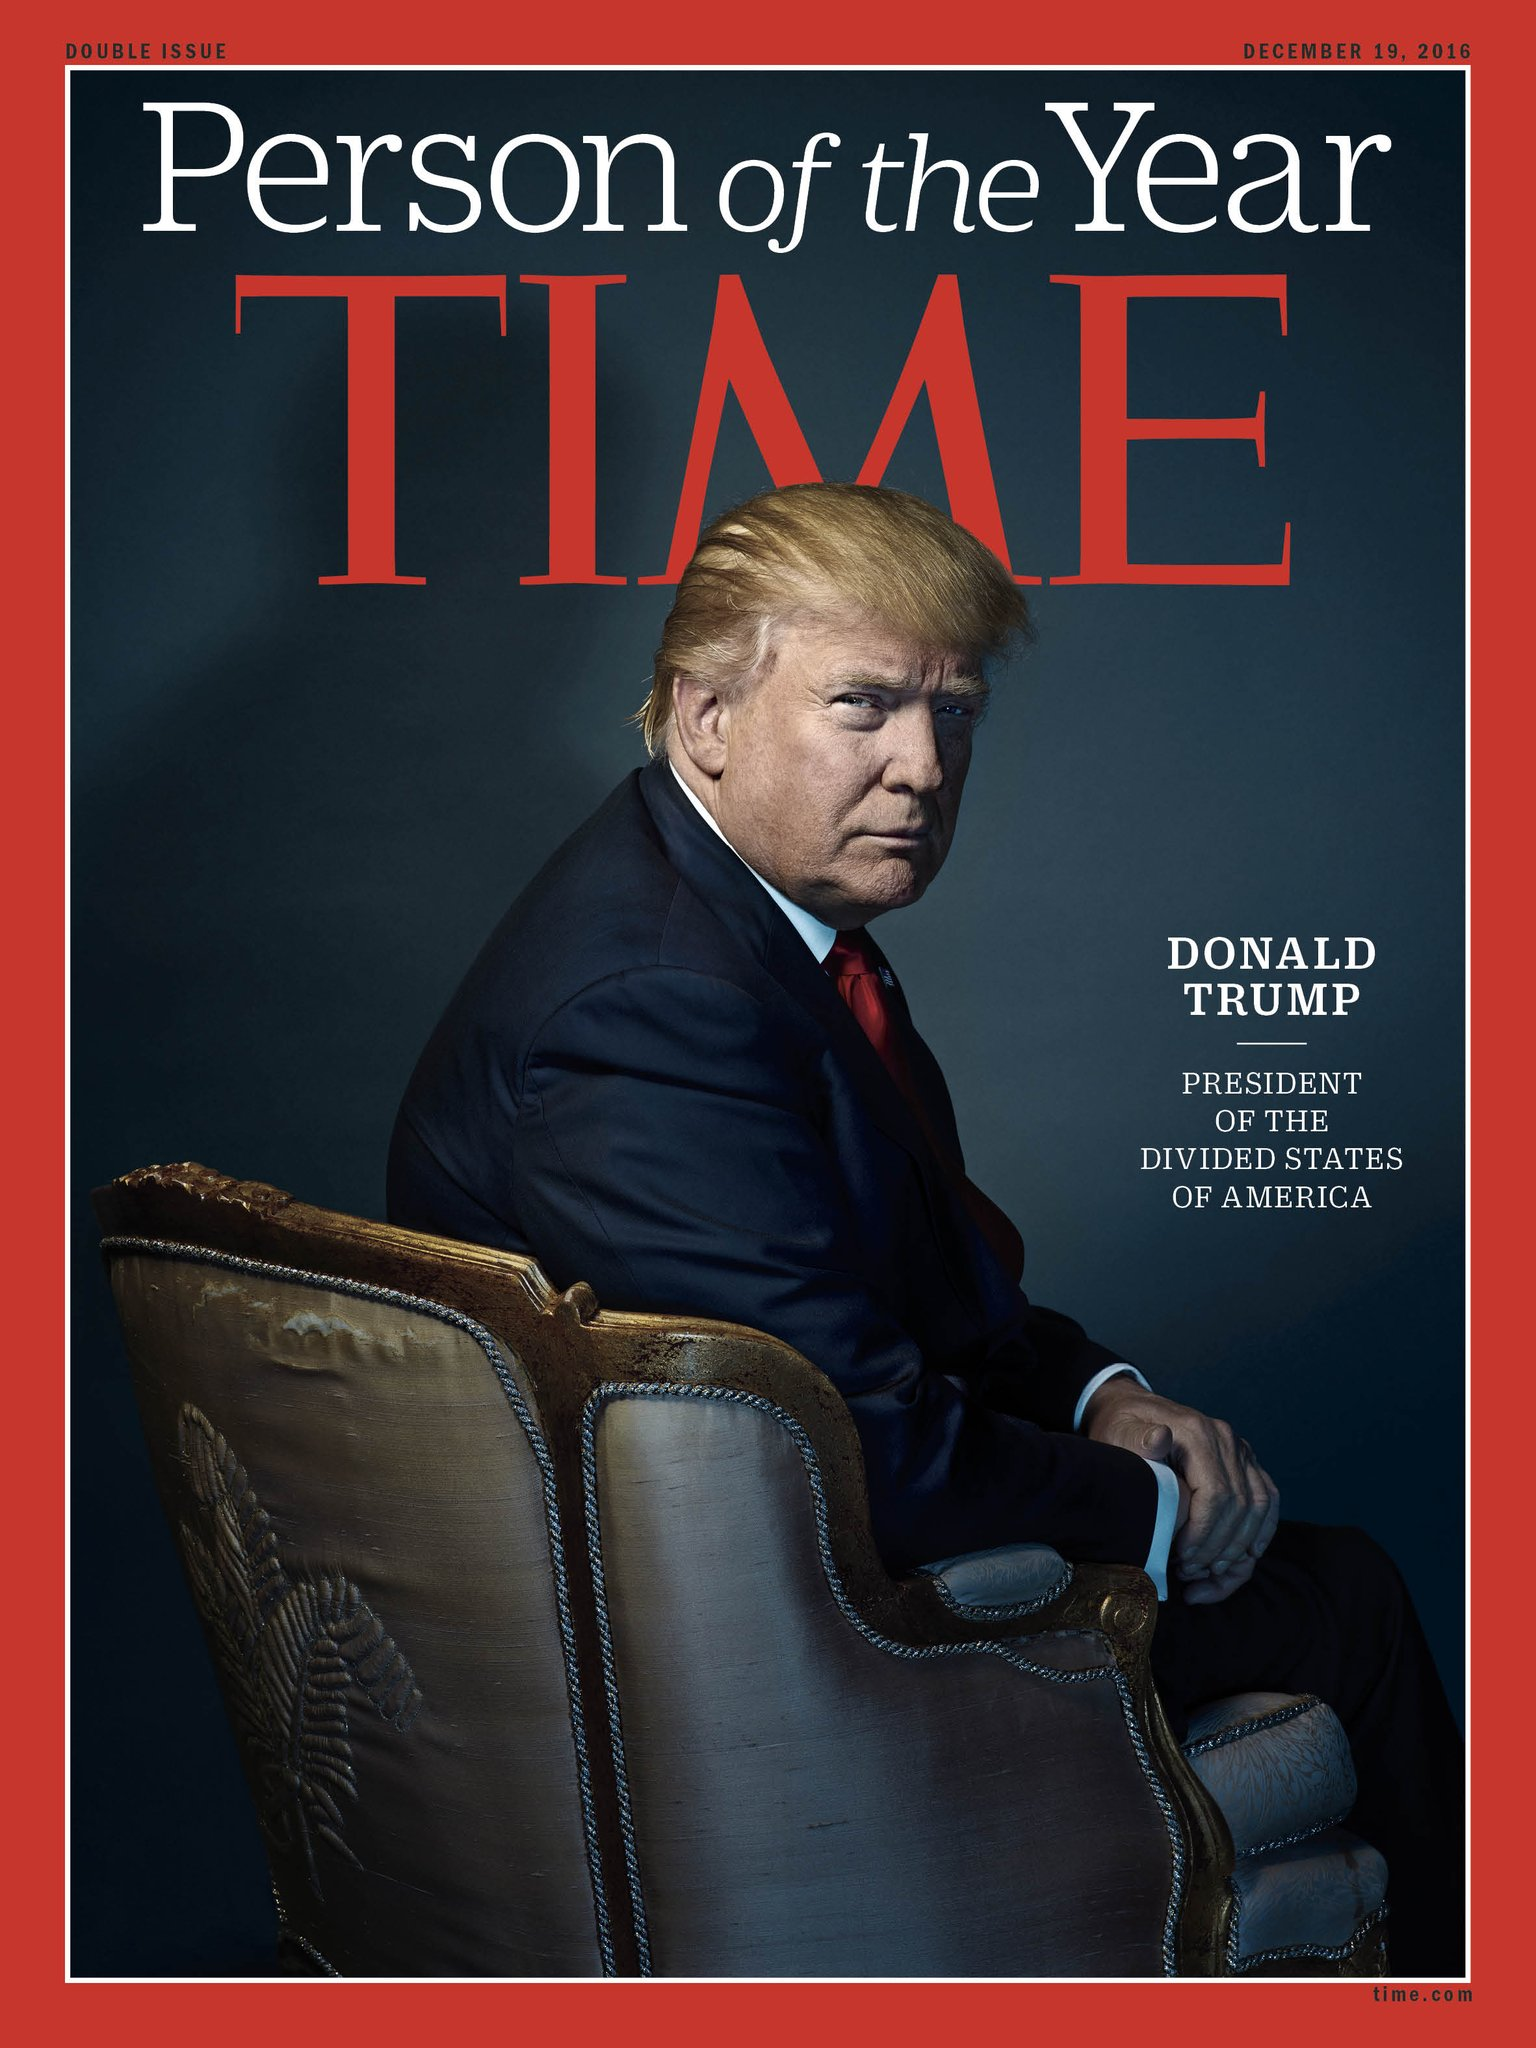 TIME magazine Trump person of the year